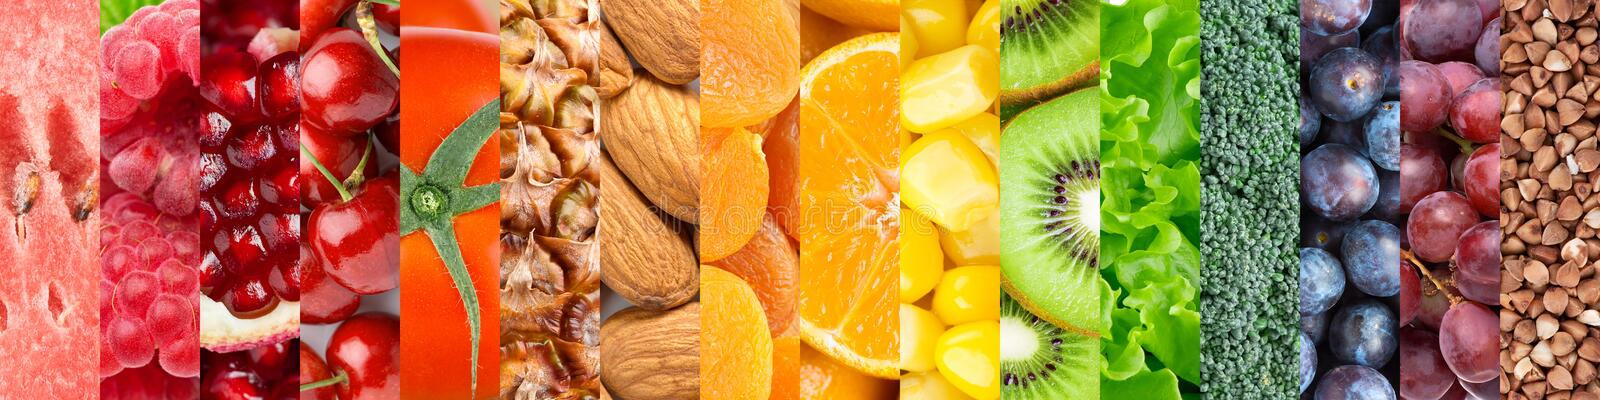 Healthy food background. Collection with different fruits, vegetables and healthy eating royalty free stock images